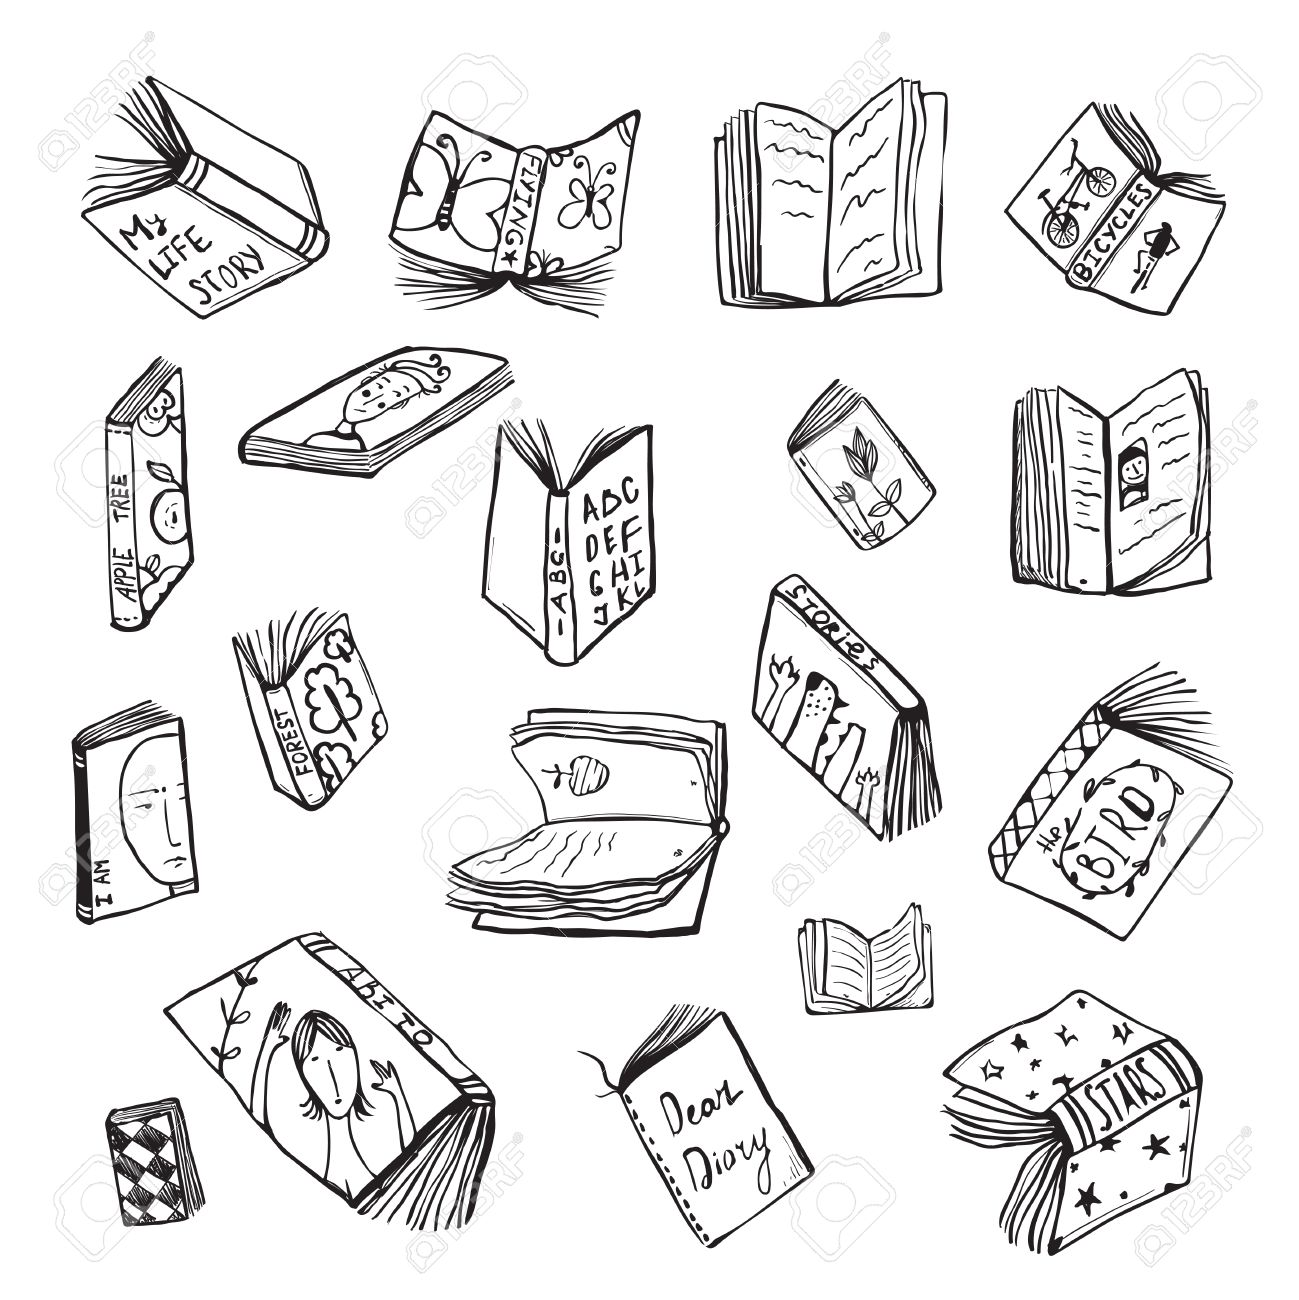 Open Books Drawing Reading Collection in Black Lines. Big set of hand drawn black and white outline literature covers illustration. - 45635116